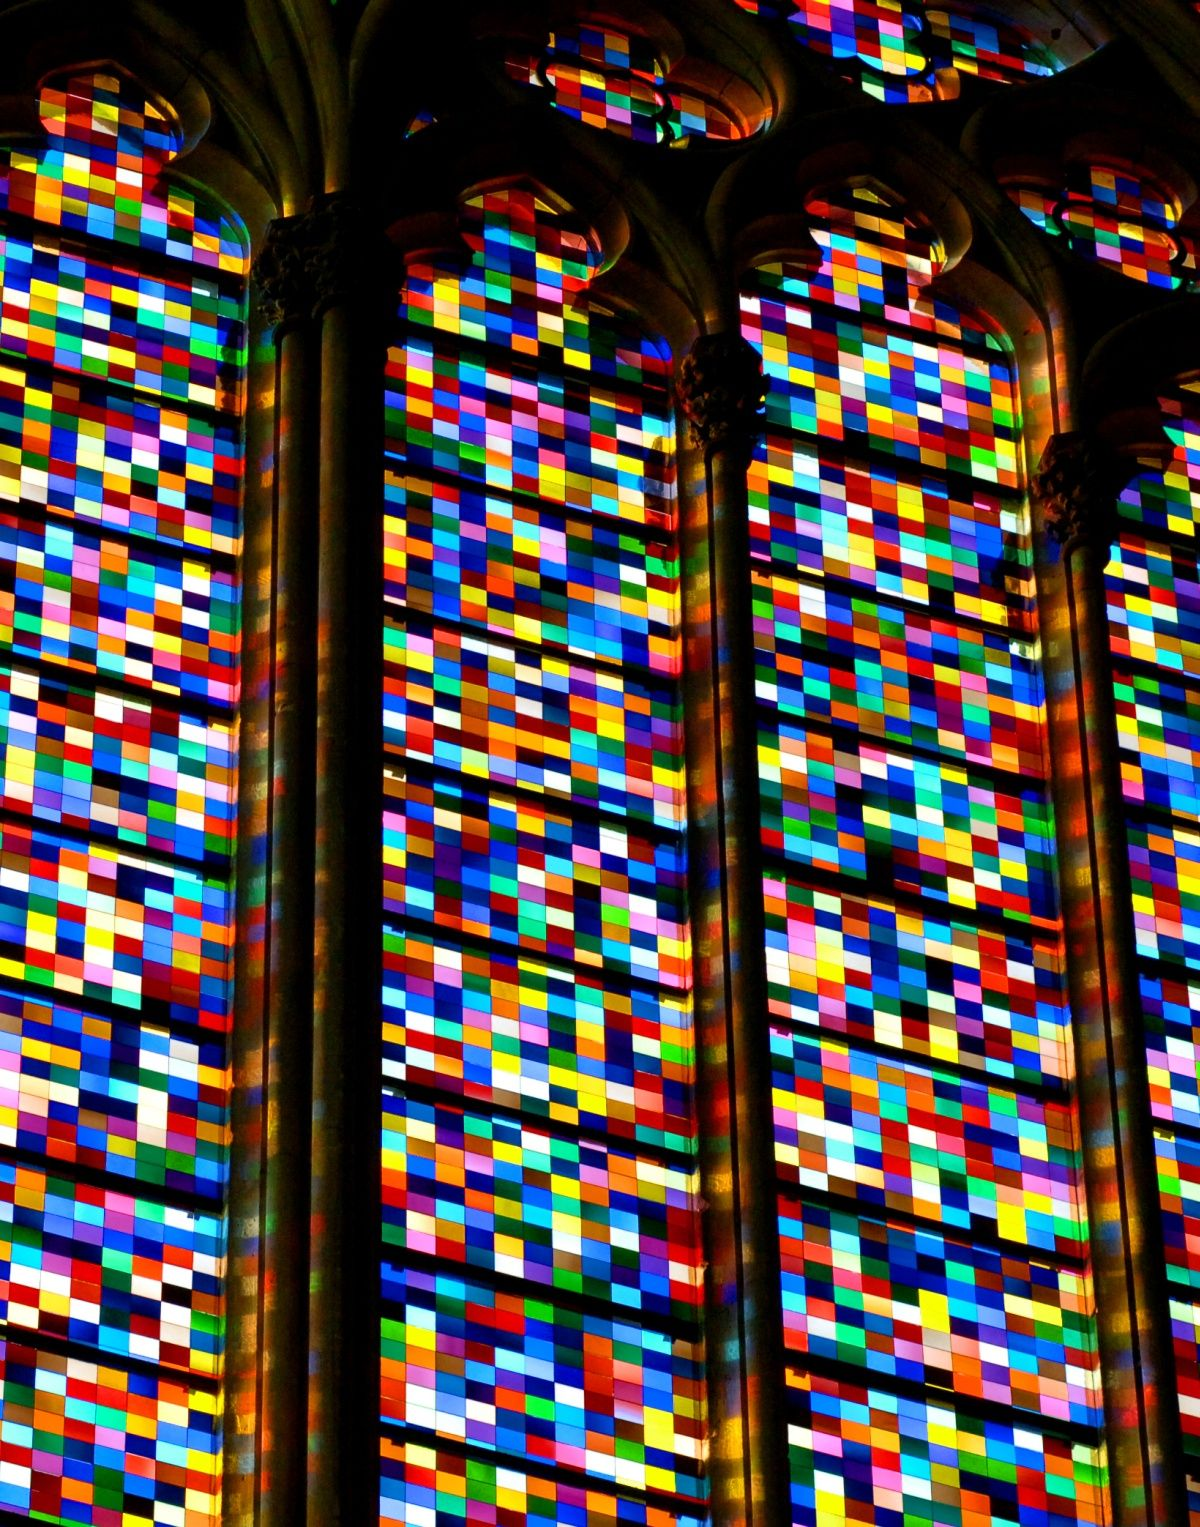 A New European German Traditional Aesthetic Aapbbmkvd Gerhard Richter Window Cologne Cathedral 2007 Gerhard Richter Glass Art Fused Glass Art